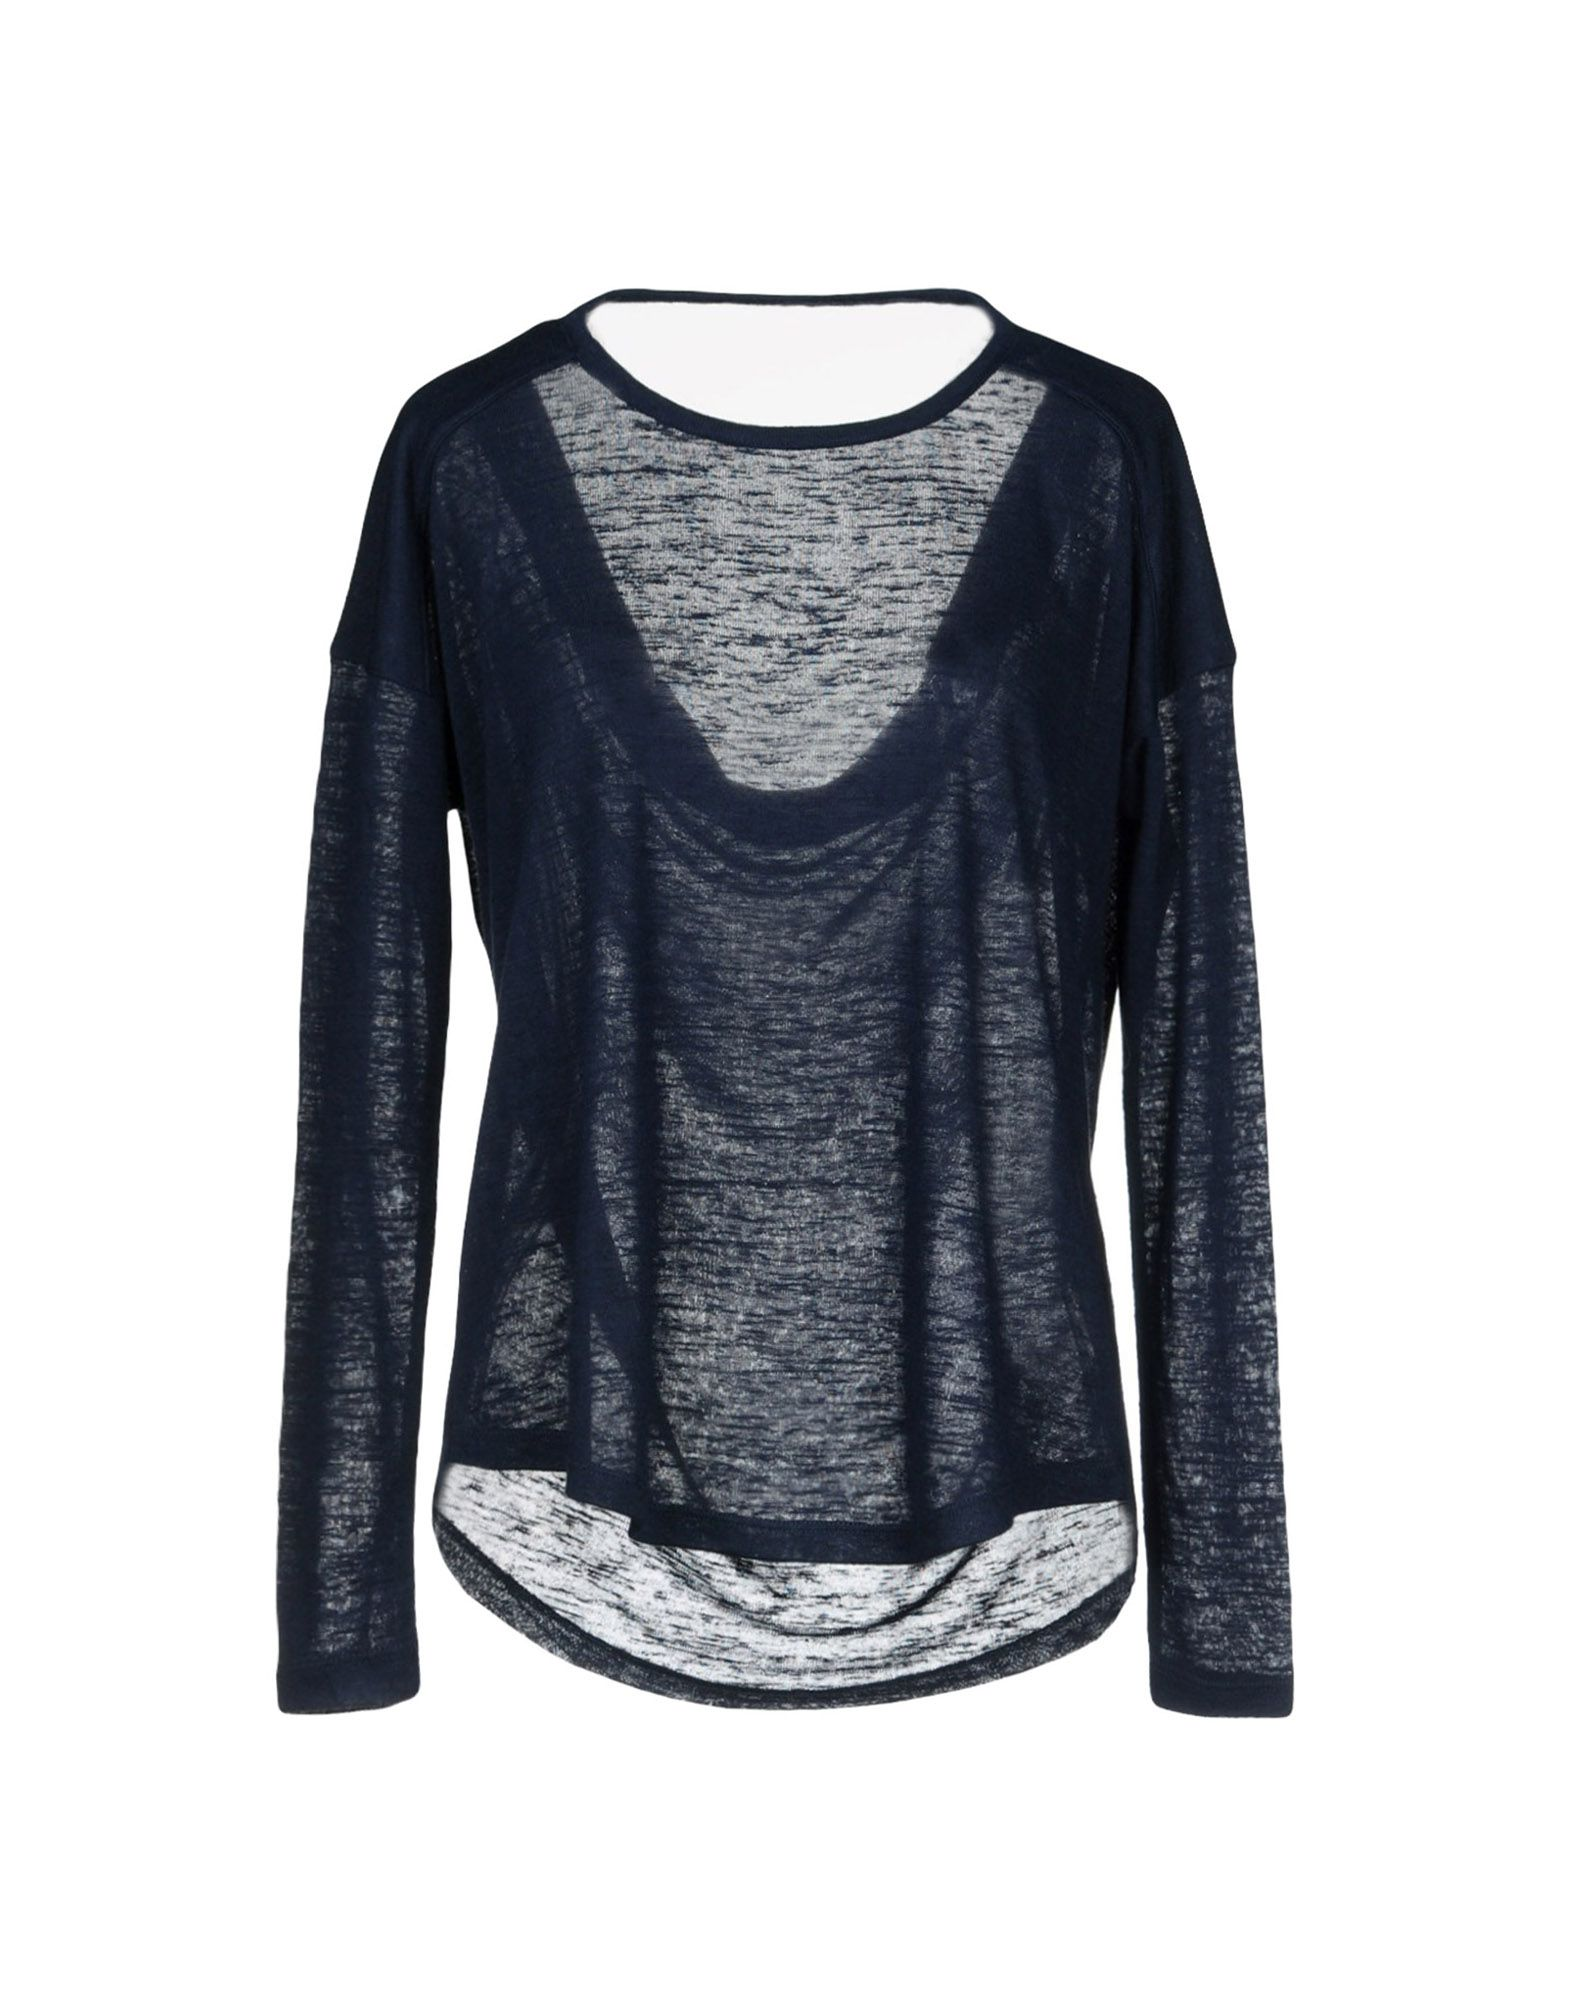 TART COLLECTIONS Sweater in Dark Blue